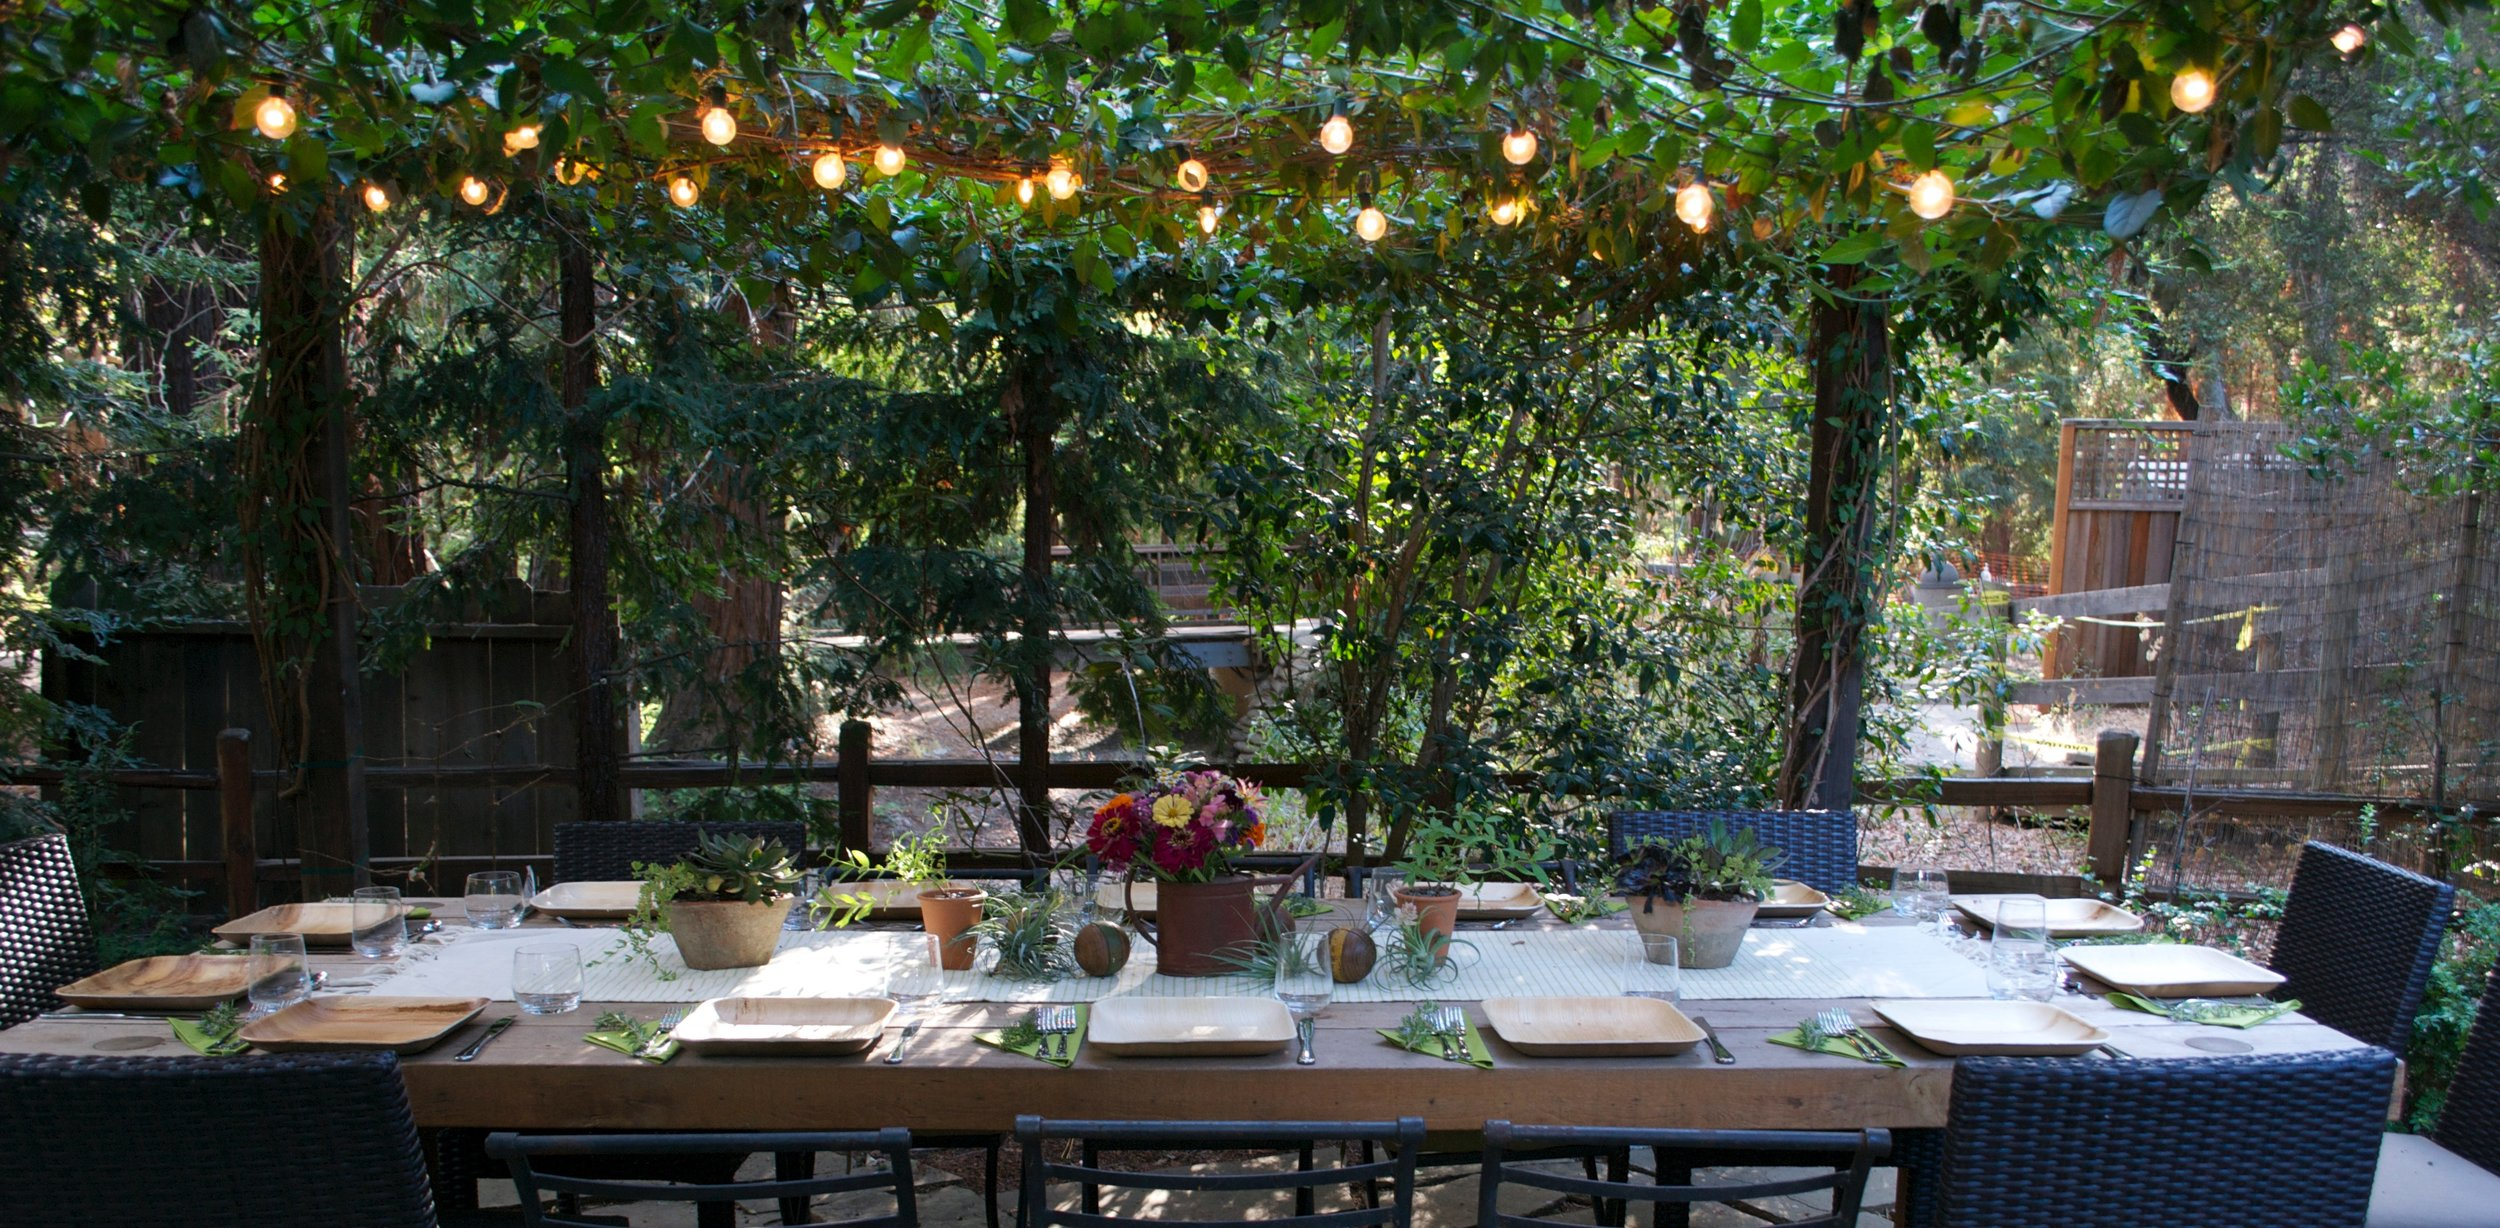 Table set in the garden